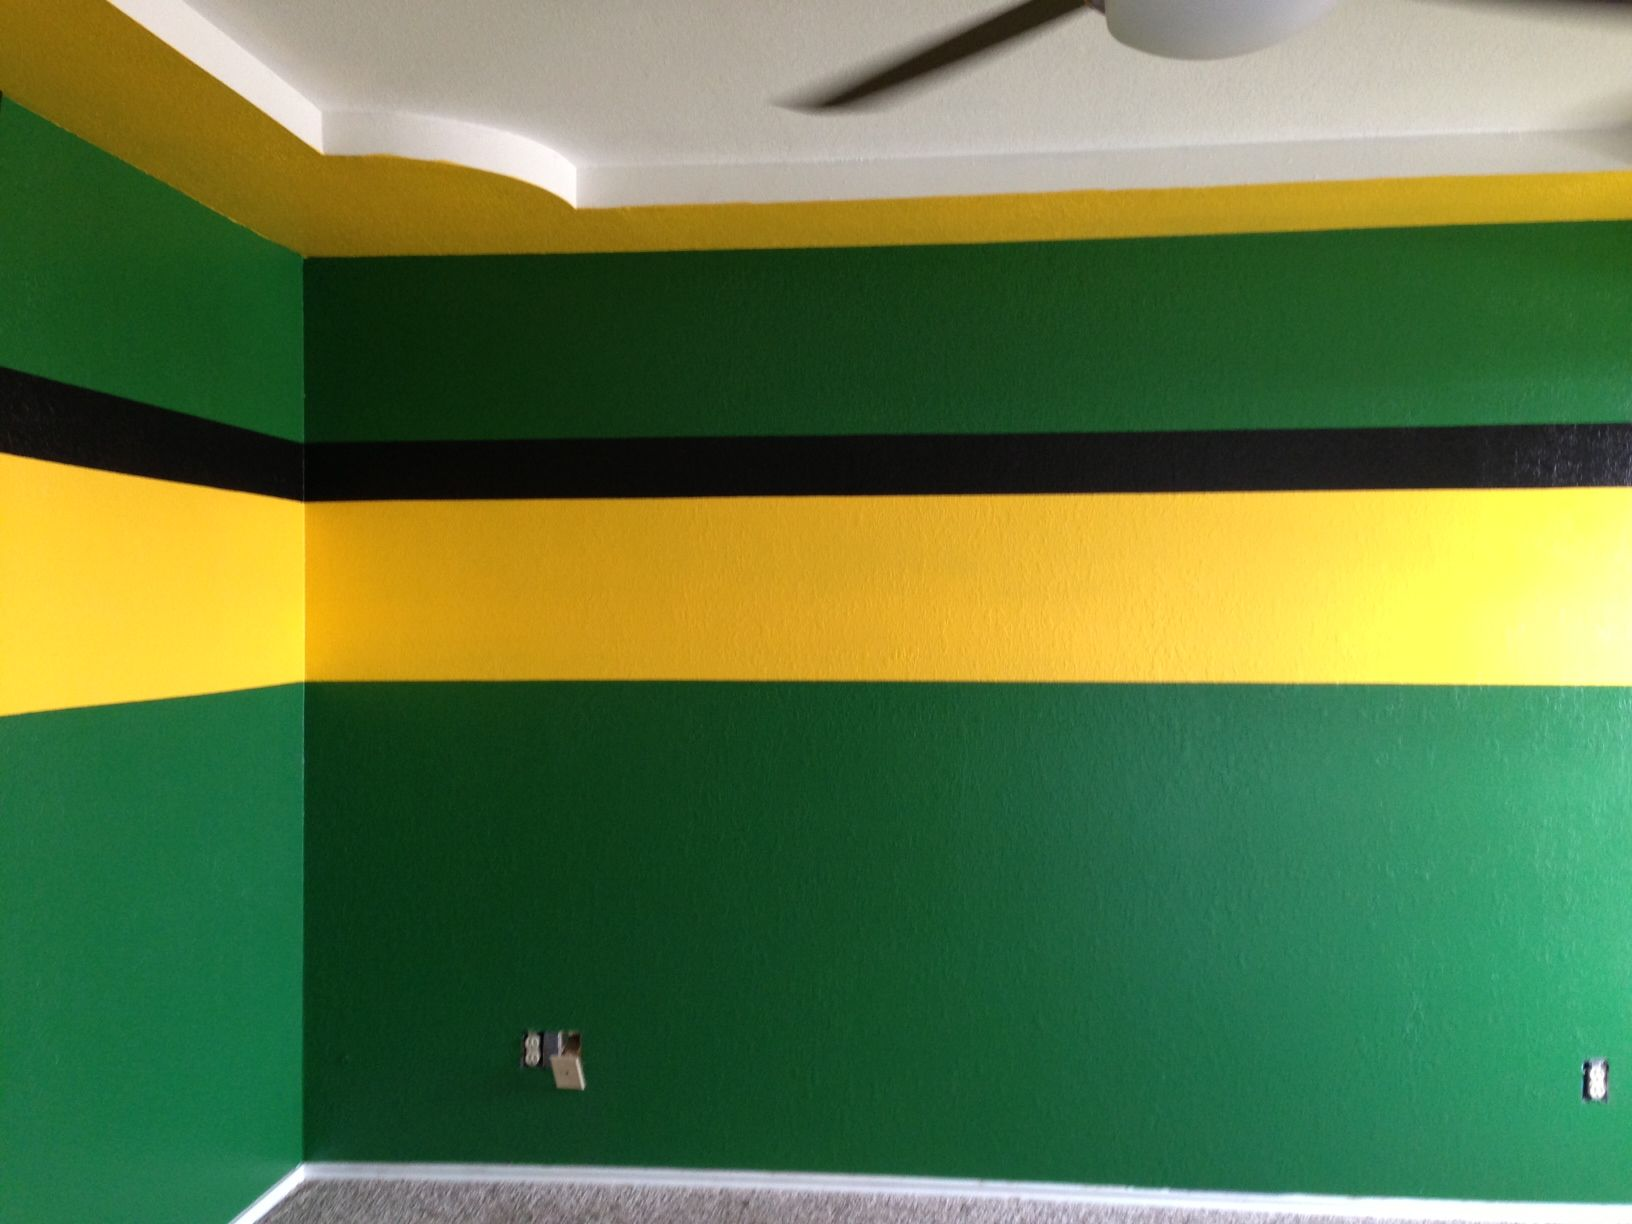 Best Colors for a John Deere Bedroom. Best Colors for a John Deere Bedroom       john deere bedroom